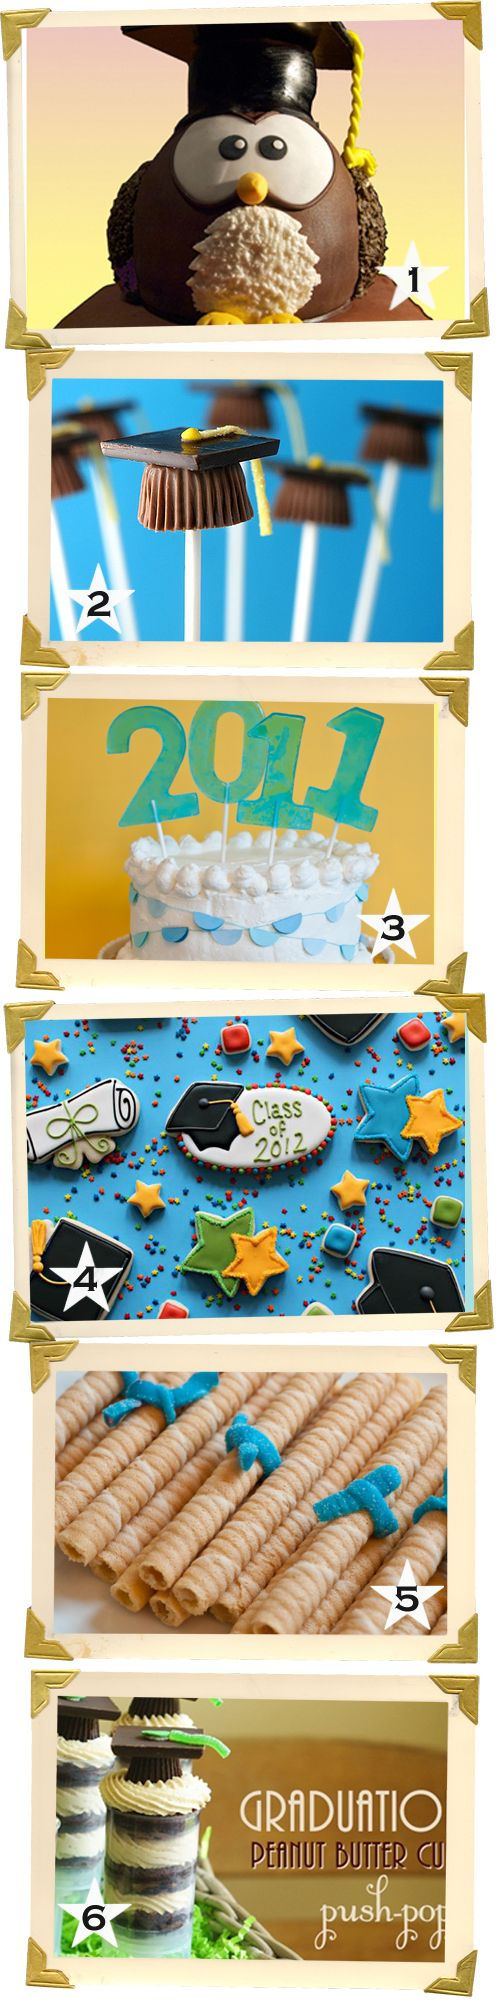 Dulces creativos para una fiesta graduación, de blog.fiestafacil.com / Creative sweets for a graduation party, from blog.fiestafacil.com